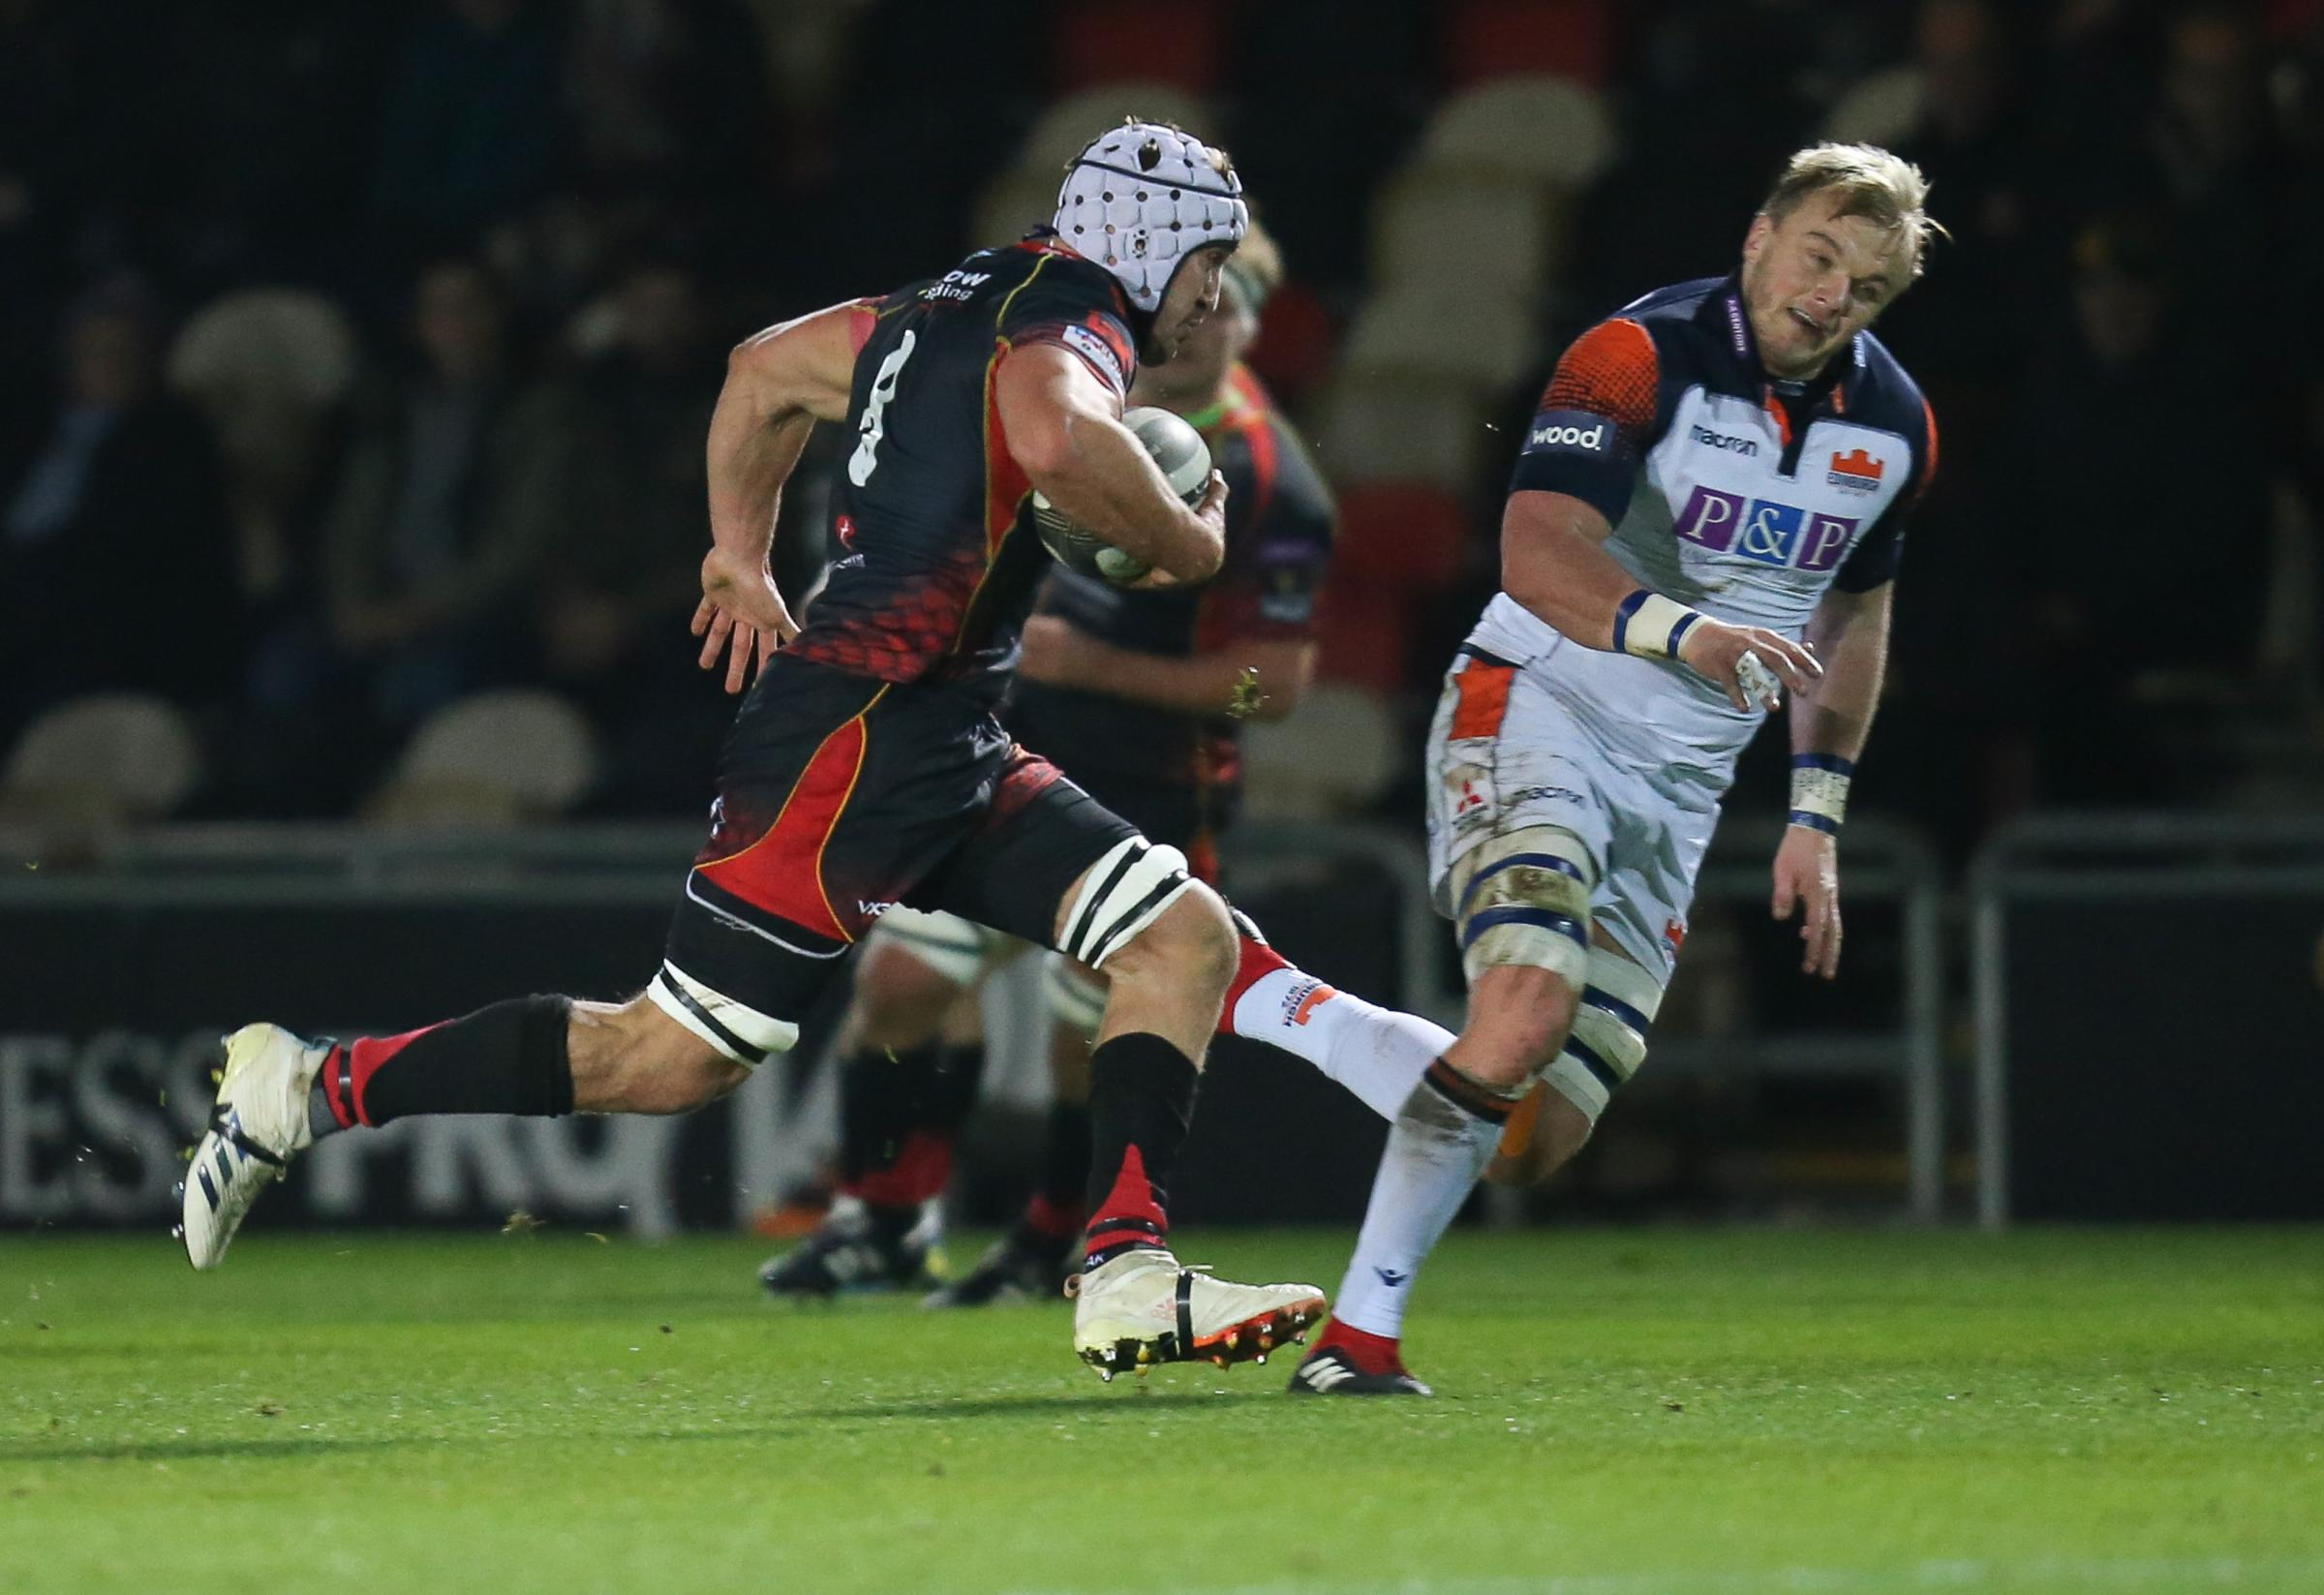 SENSATIONAL: Dragons back rower Ollie Griffiths